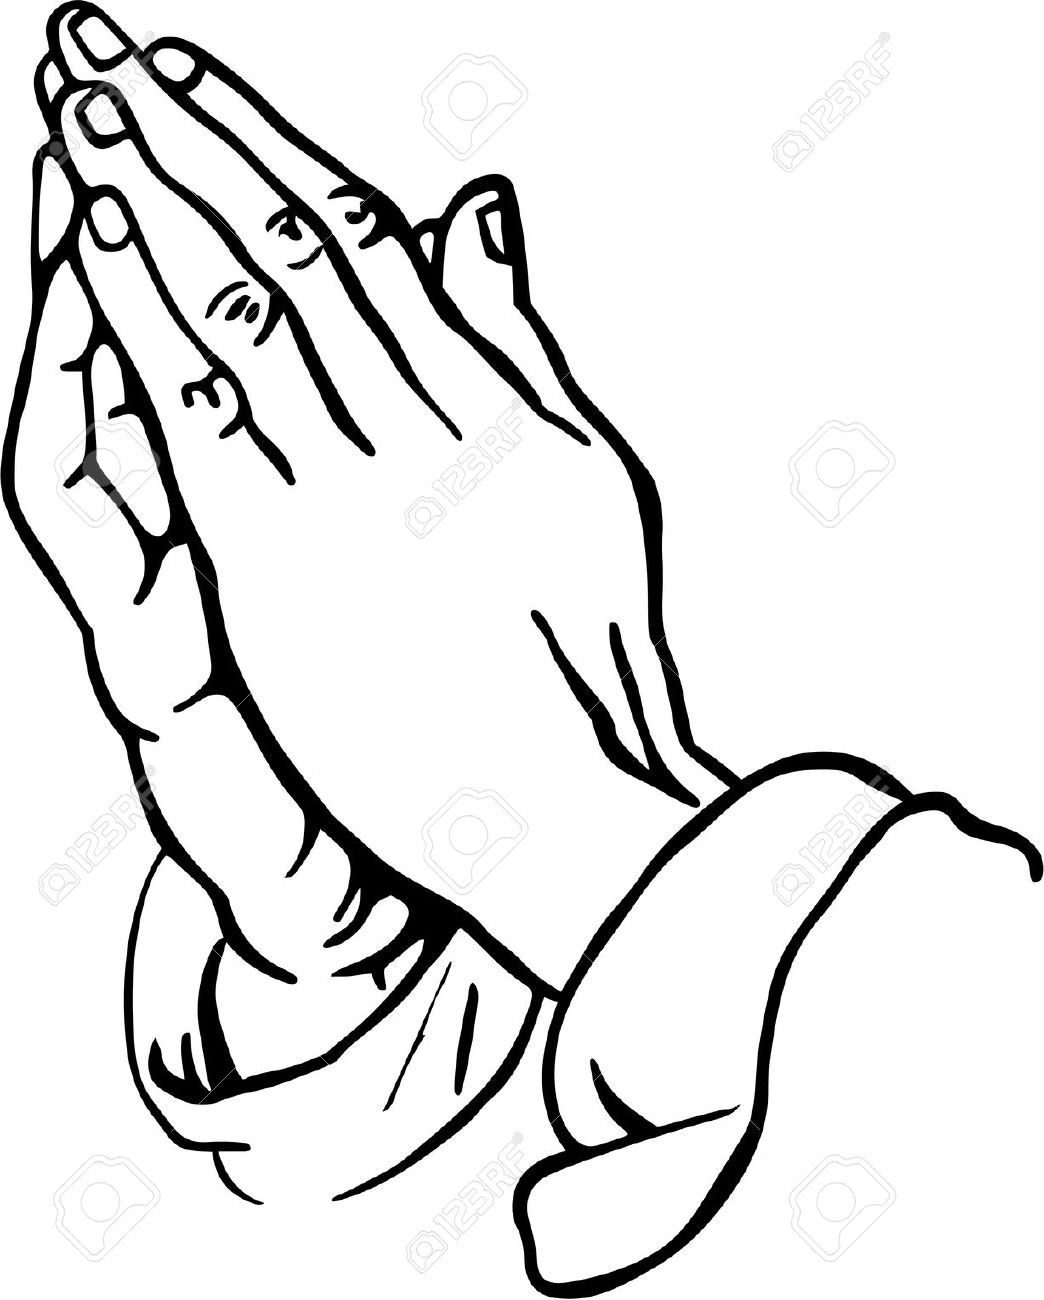 1044x1300 Praying Hands Stock Photos Amp Pictures. Royalty Free Praying Hands